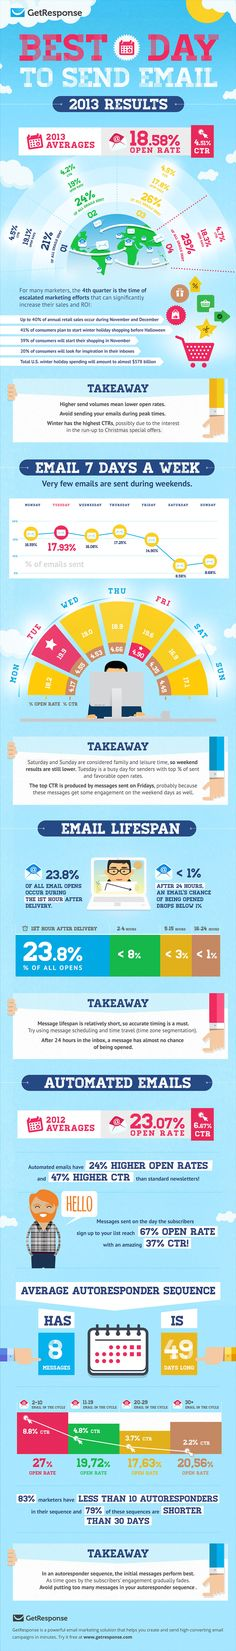 New Infographic: Best Day to Send Email 2013 - GetResponse Blog - Email Marketing Tips